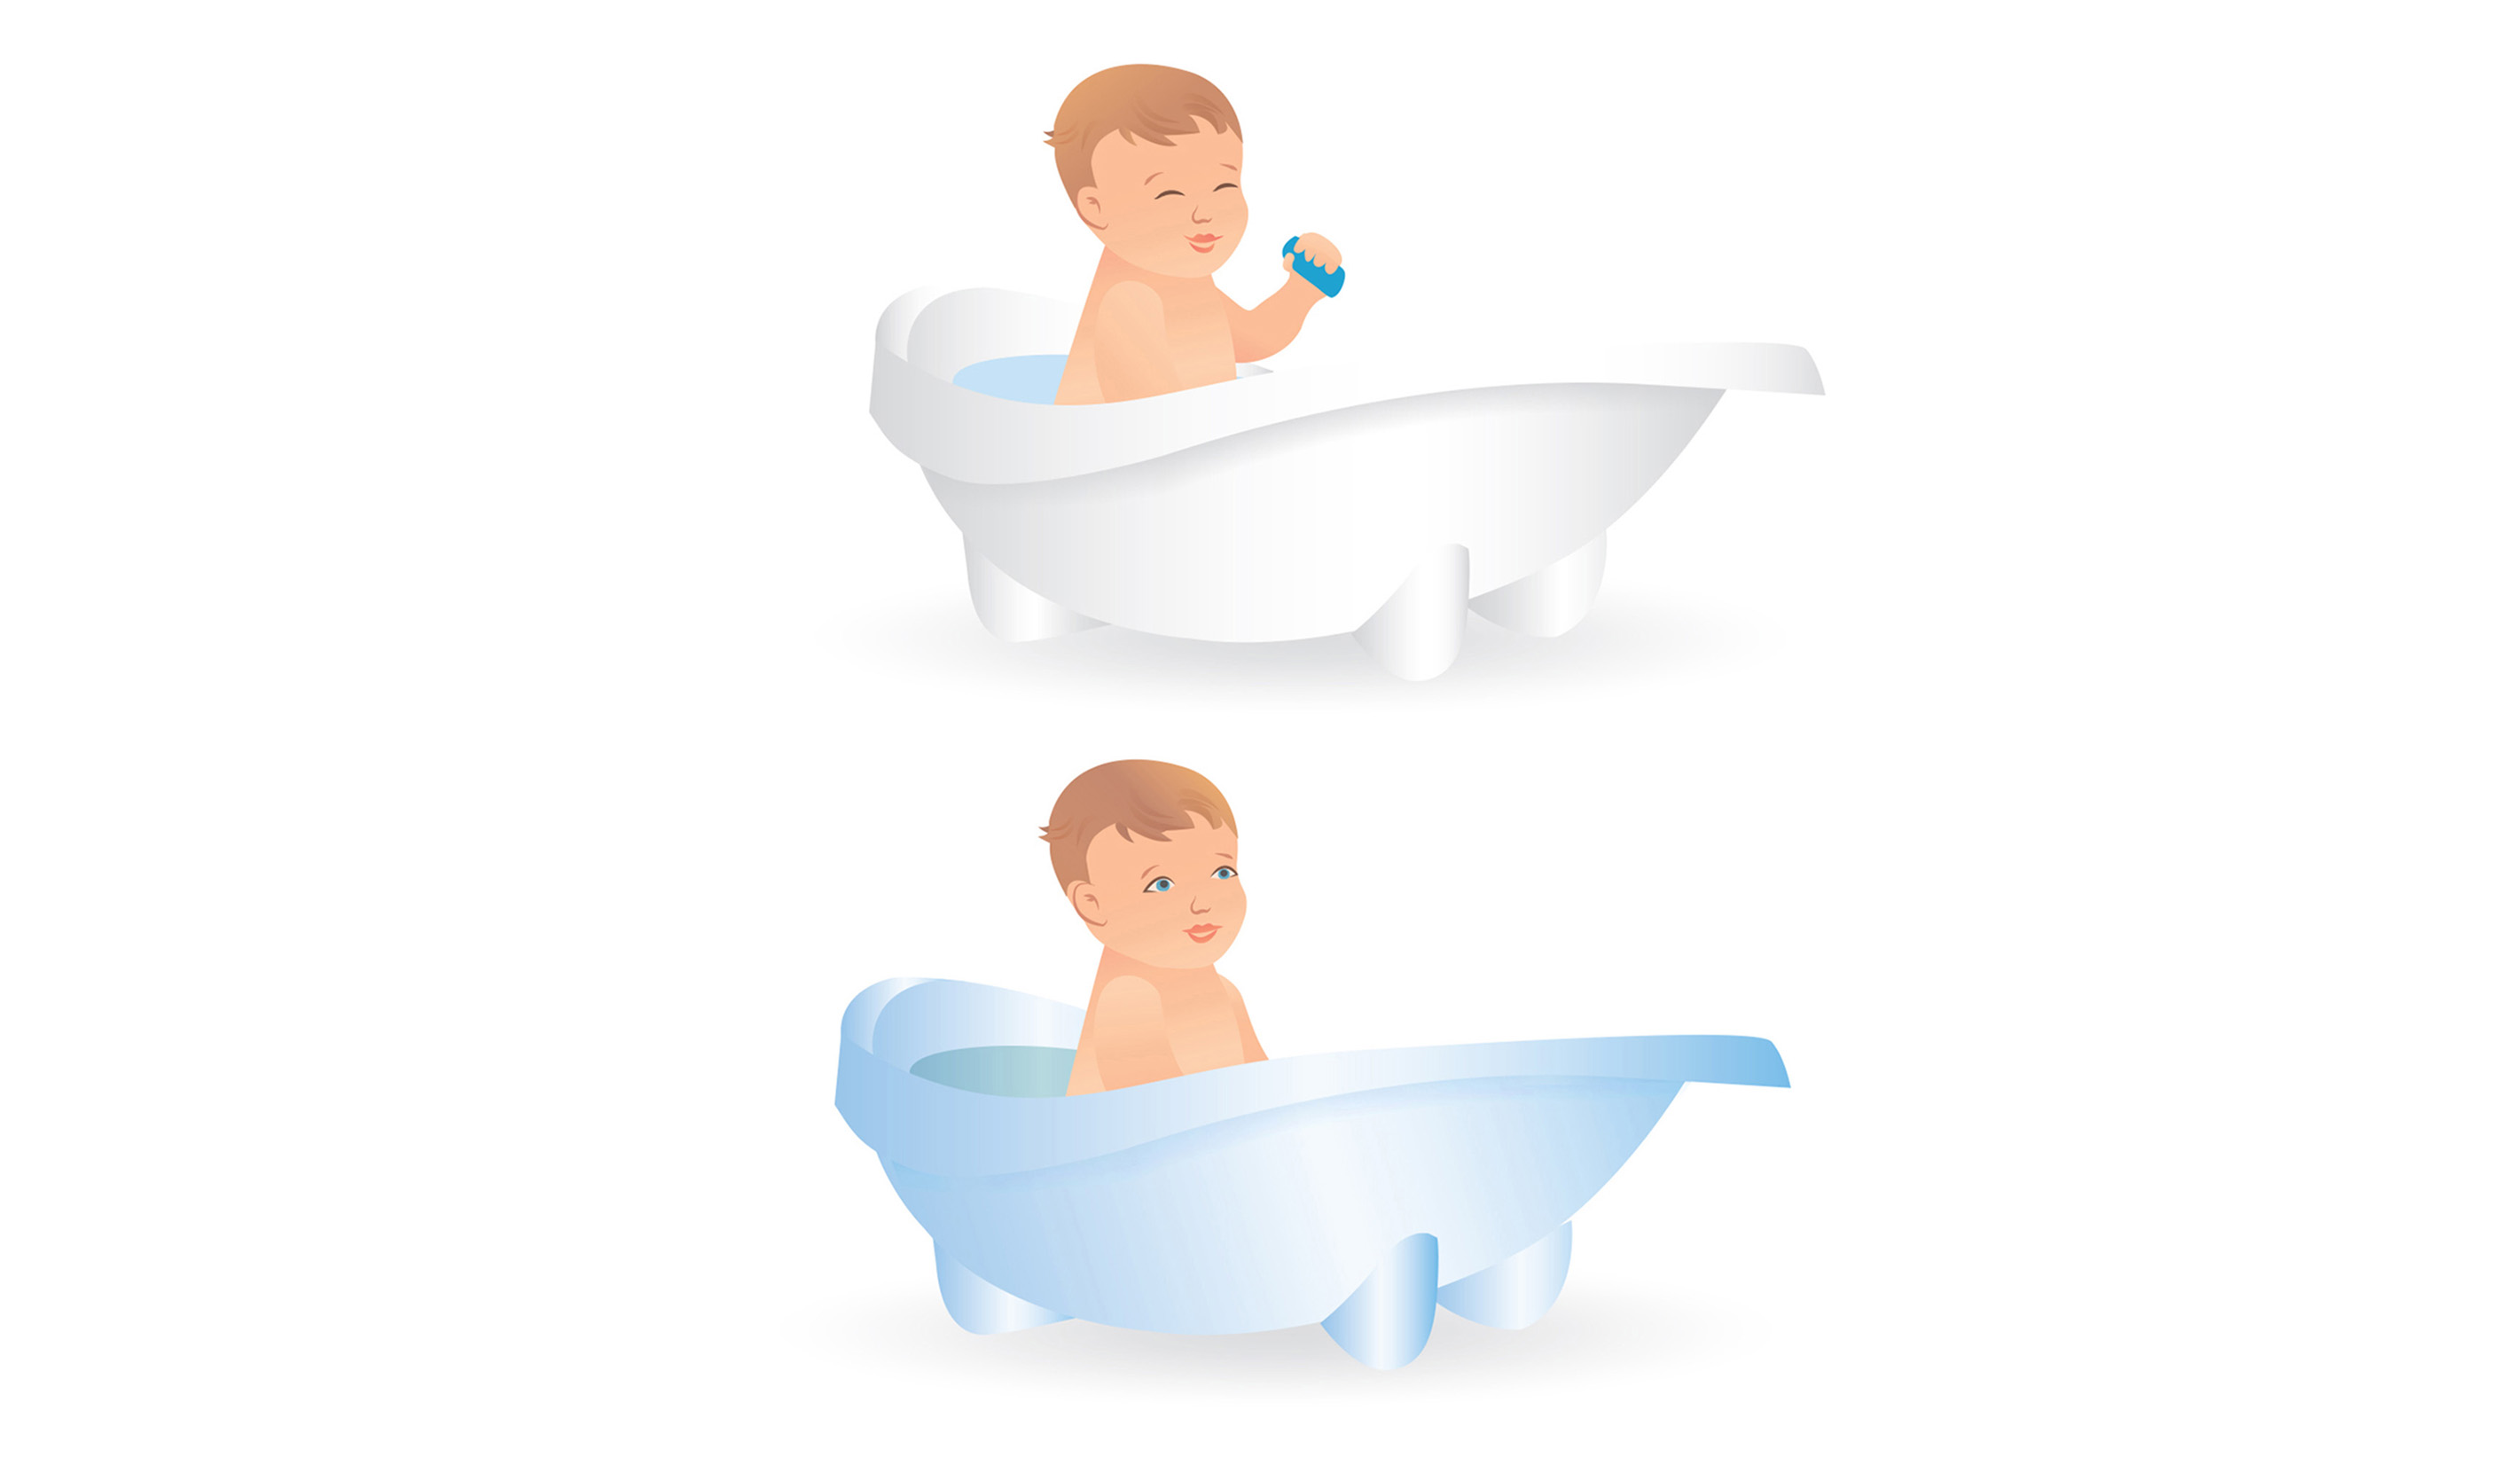 Baby_in_bath2